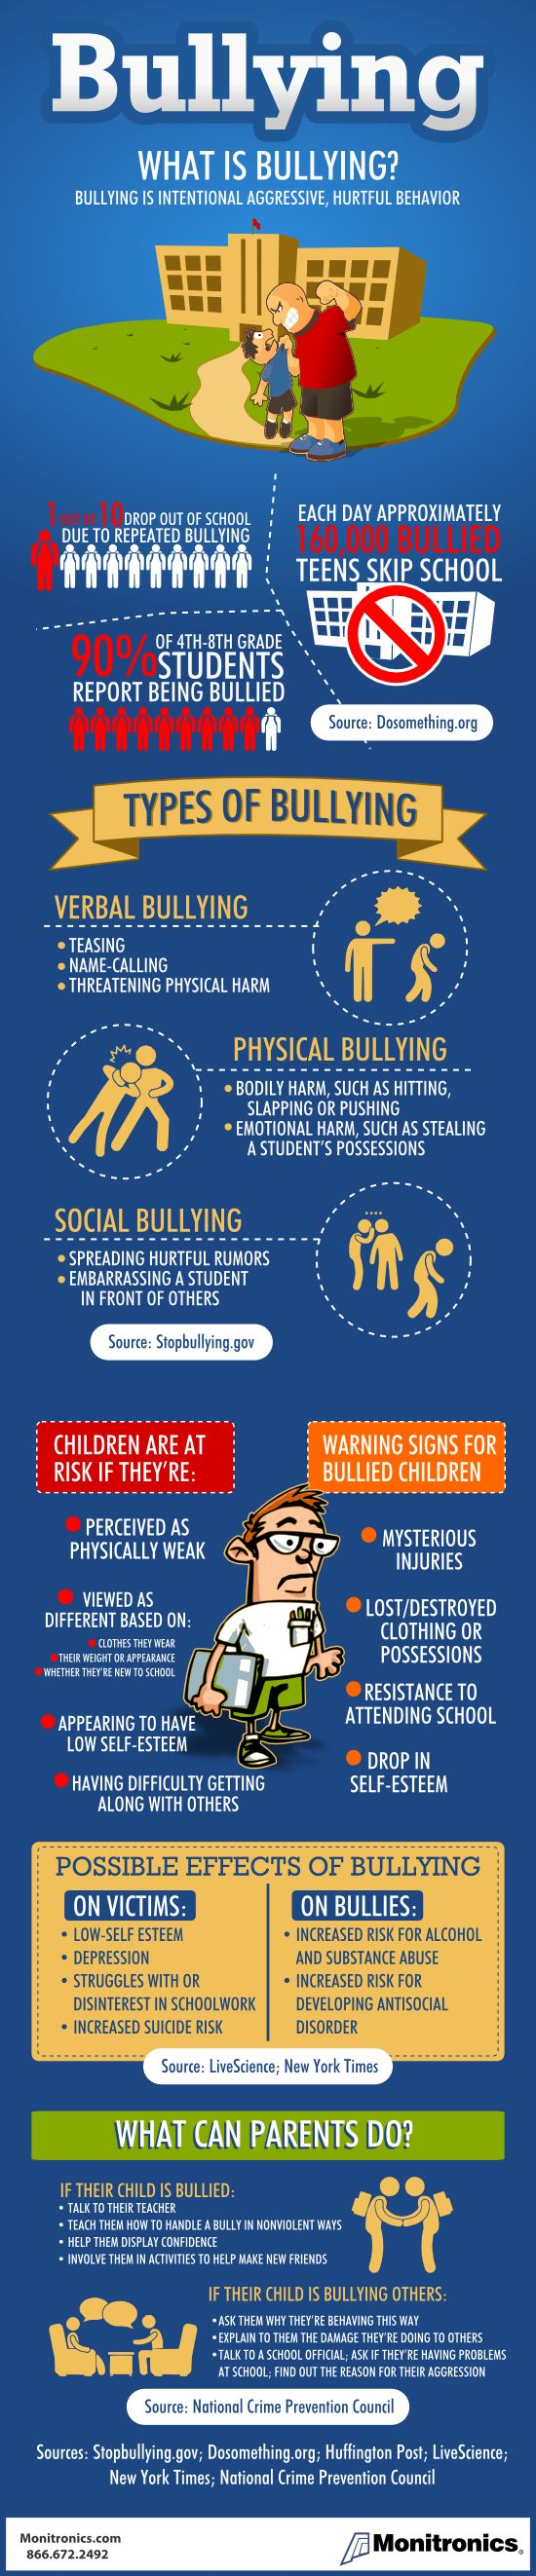 What Is Bullying? [INFOGRAPHIC] #bullying